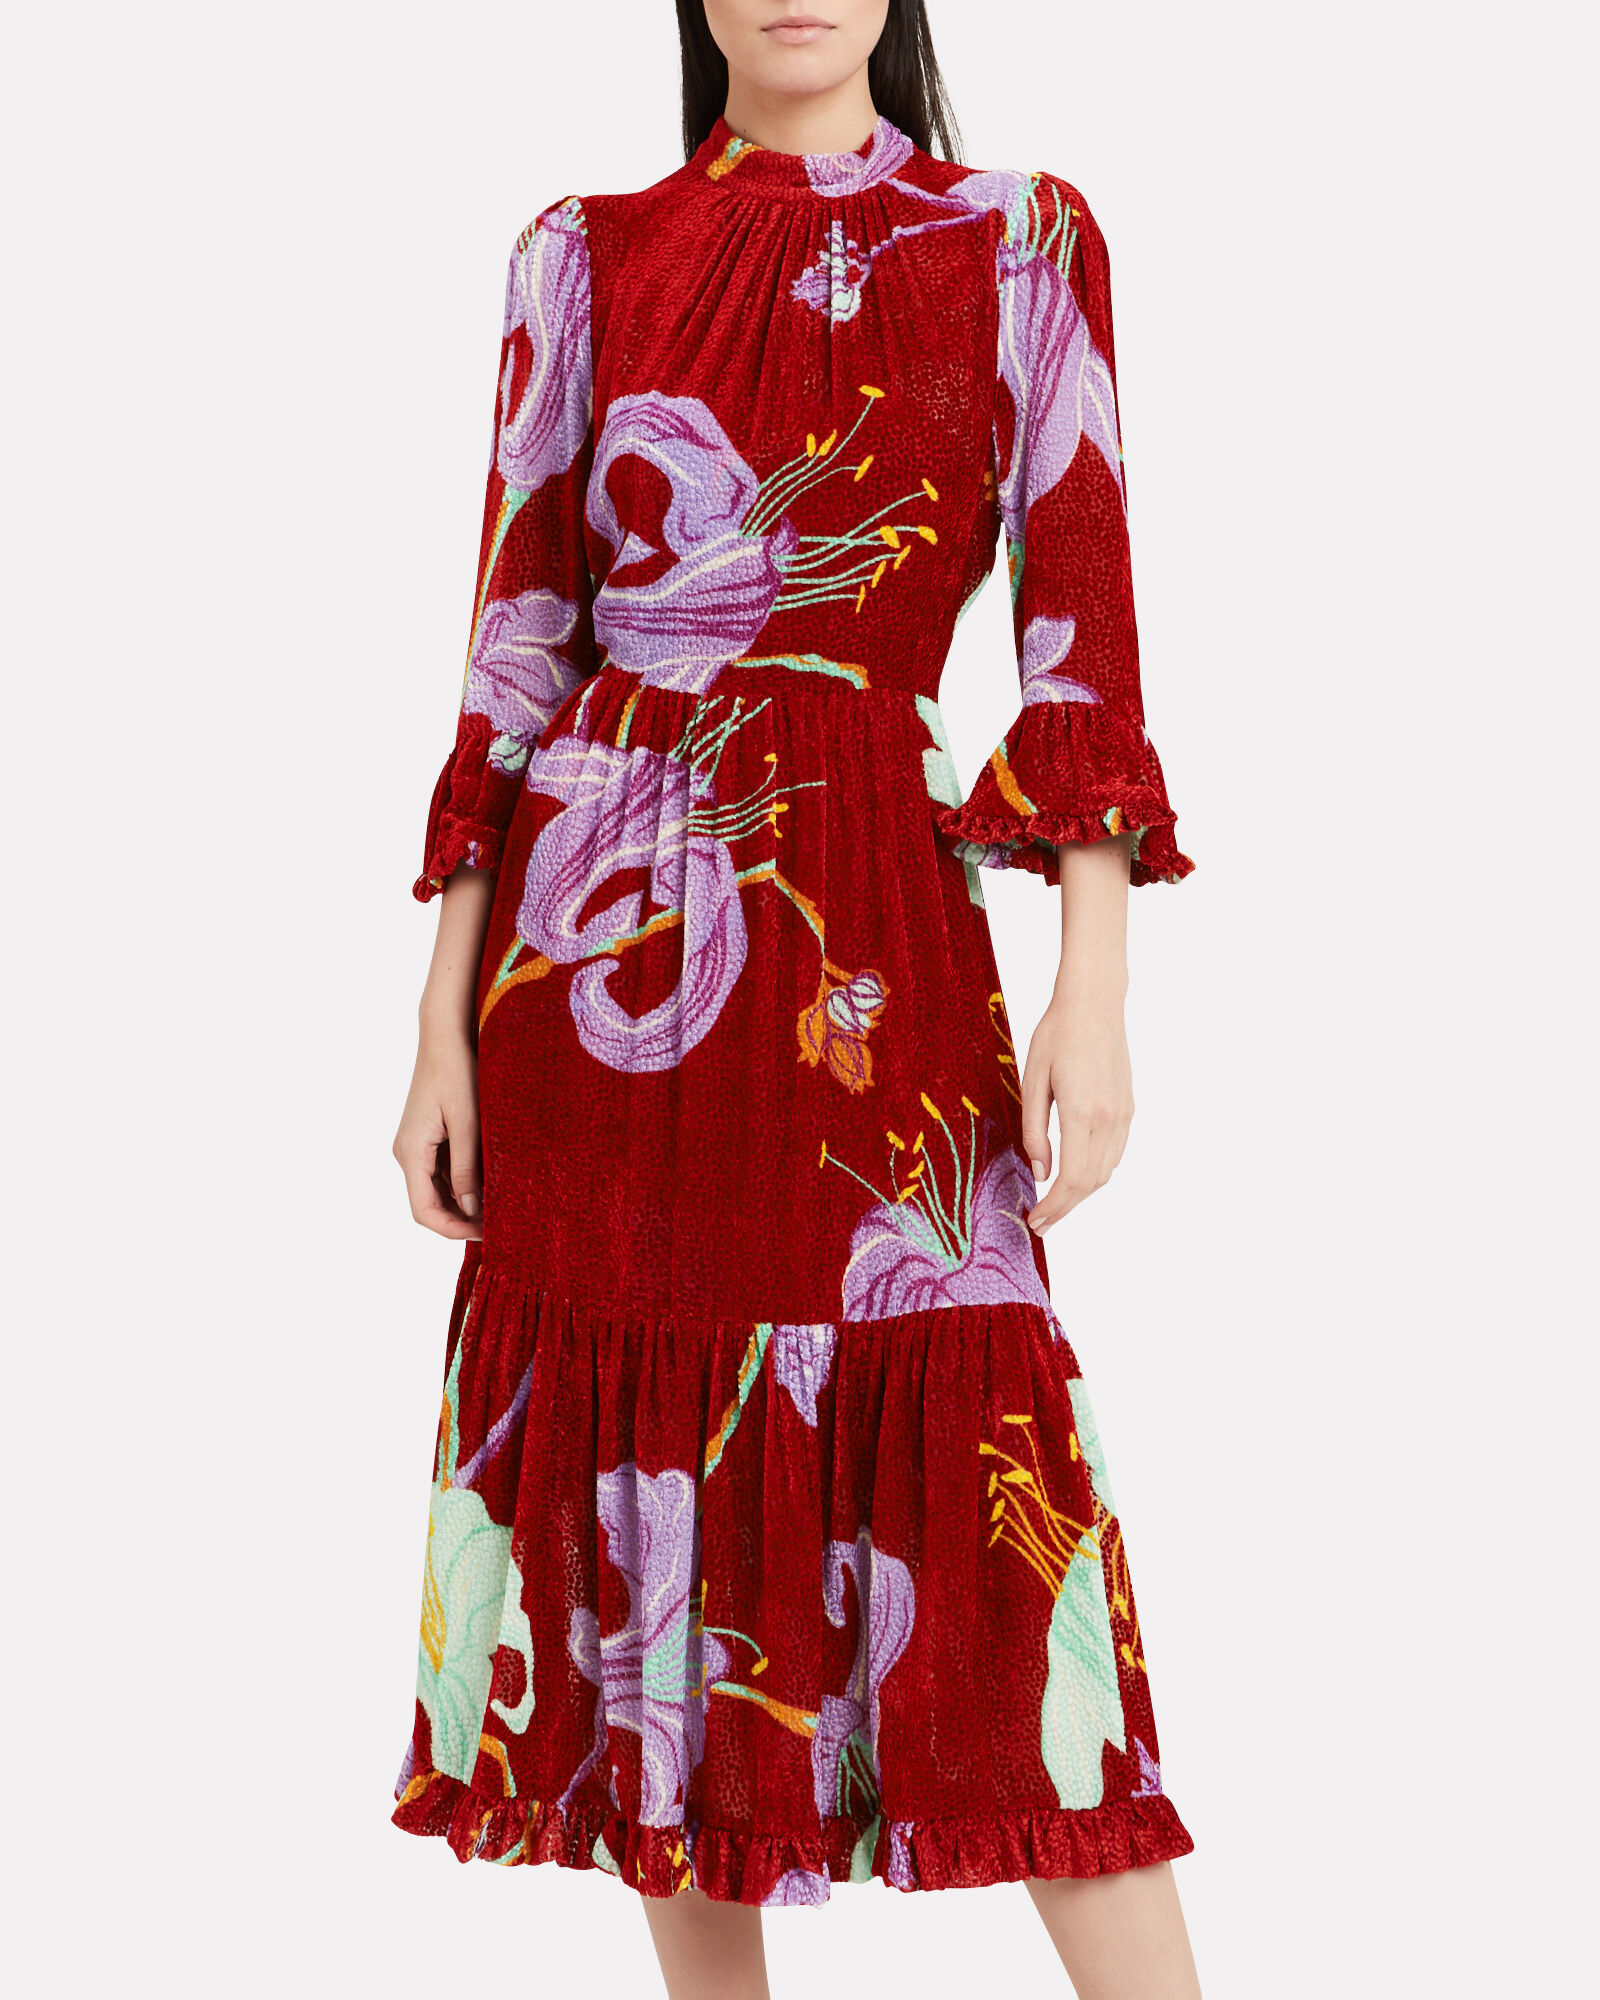 Visconti Crepe Floral Dress, RED/ORCHID, hi-res